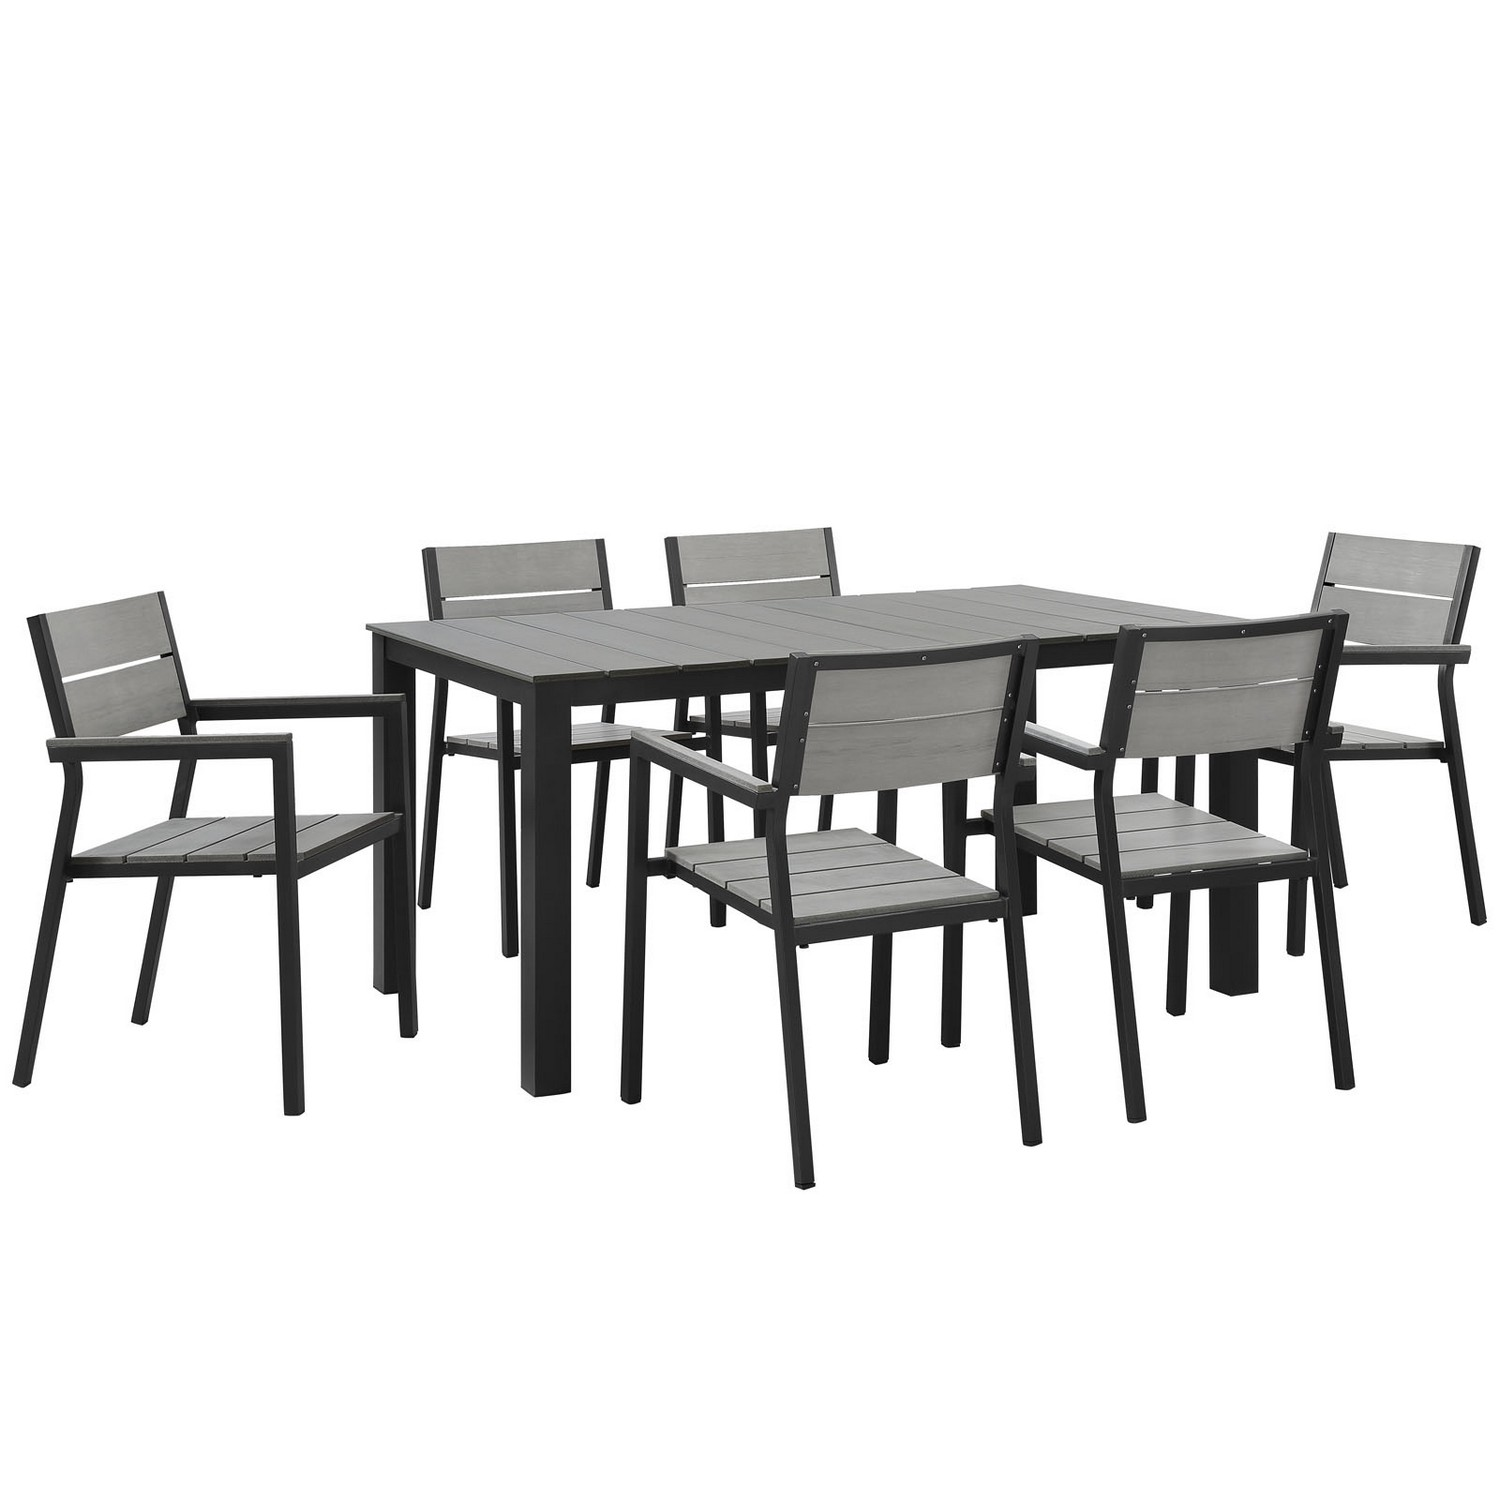 Modway Maine 7 Piece Outdoor Patio Dining Set - Brown/Gray